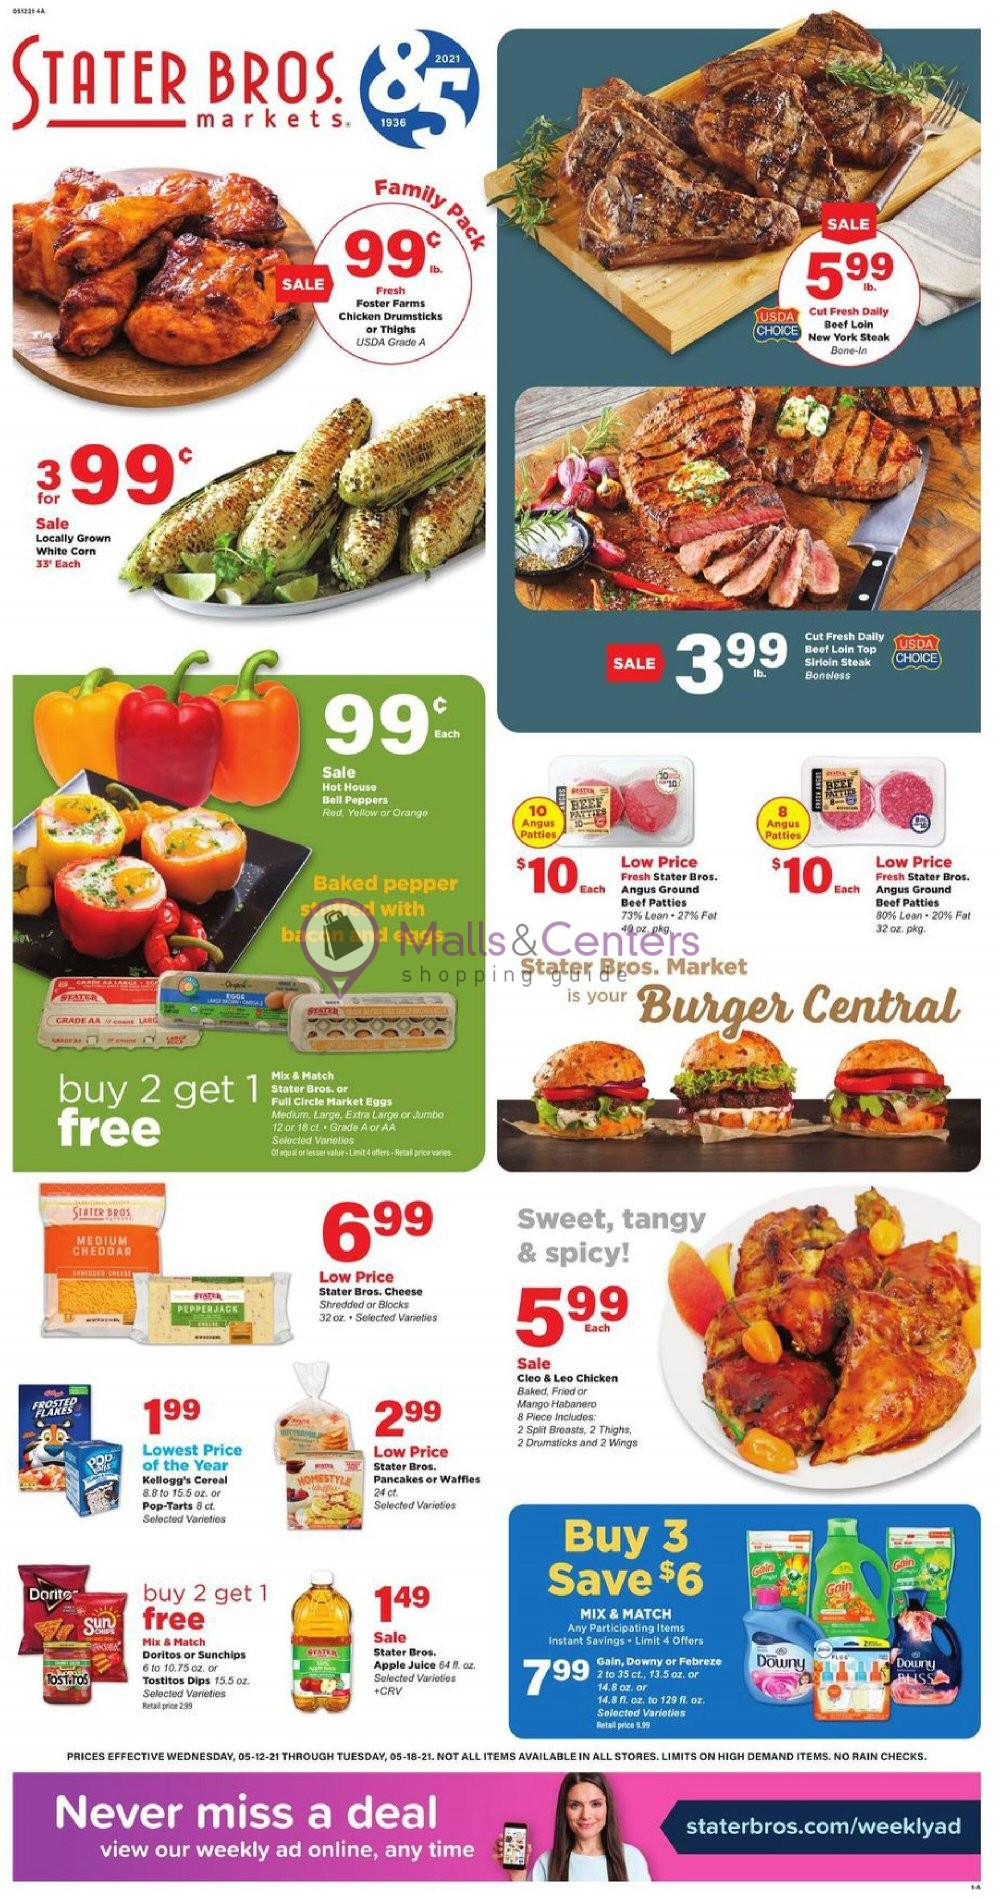 weekly ads Stater Bros. - page 1 - mallscenters.com